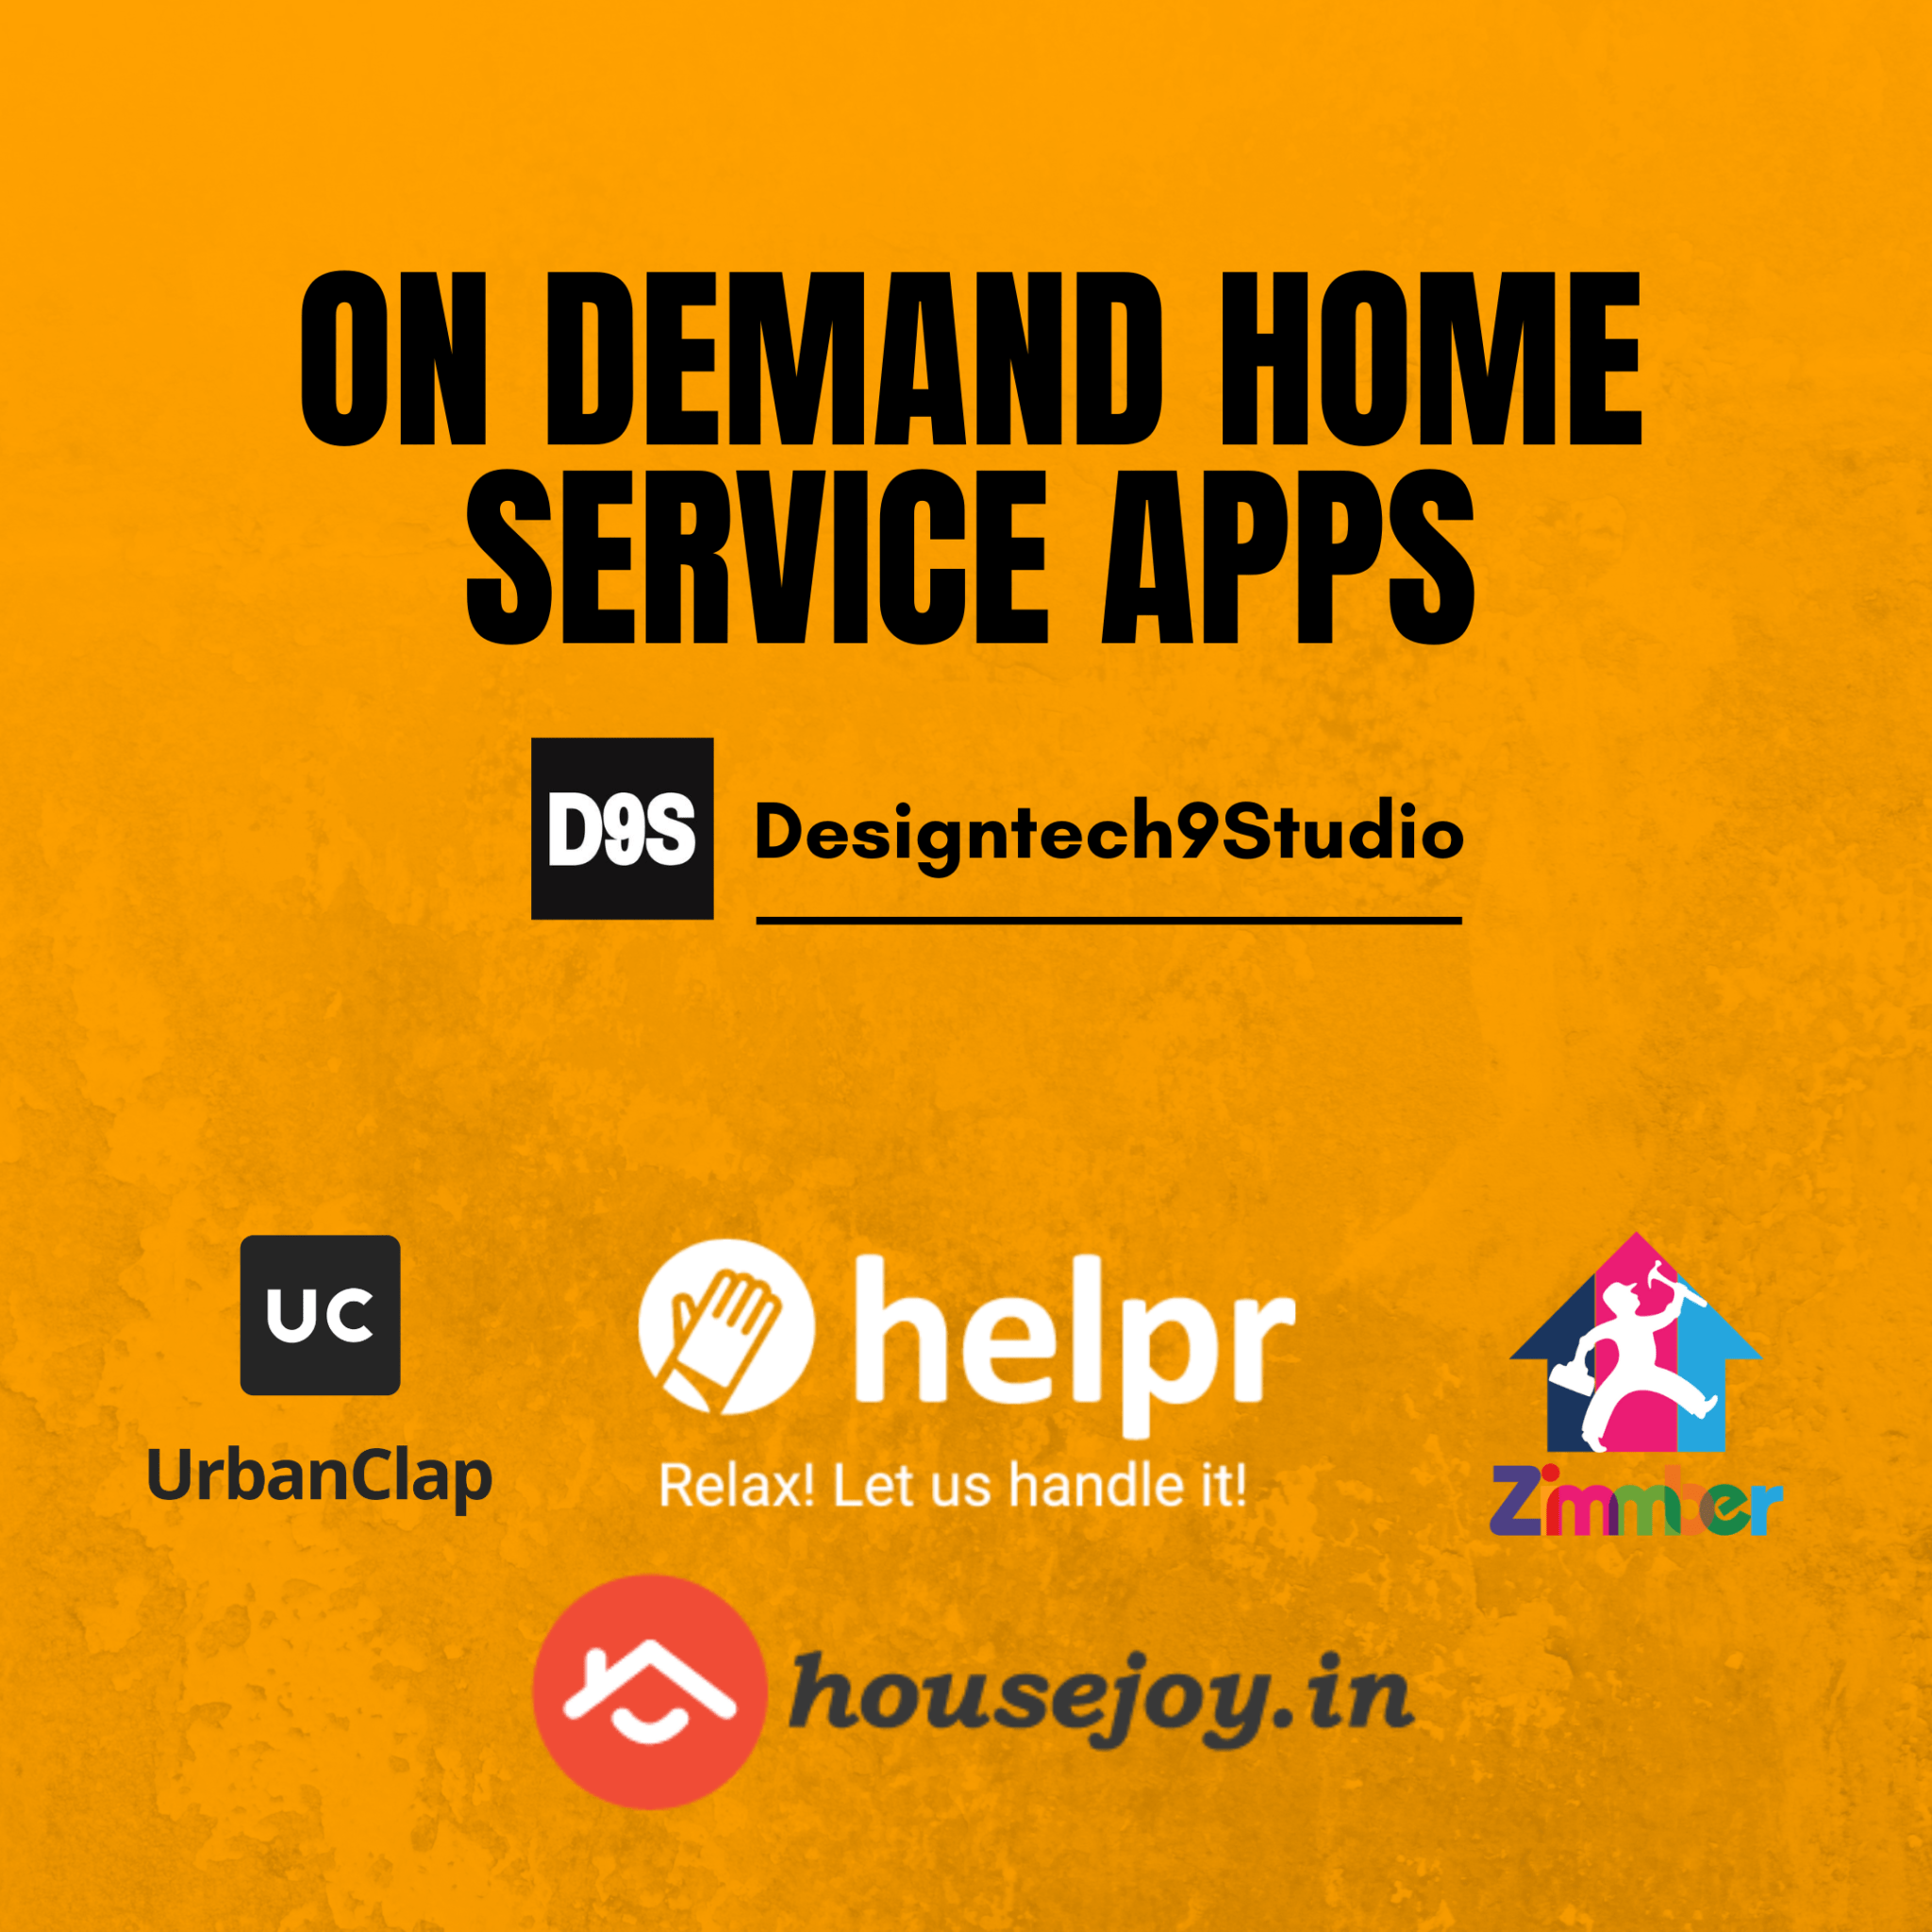 On Demand Home Service Apps